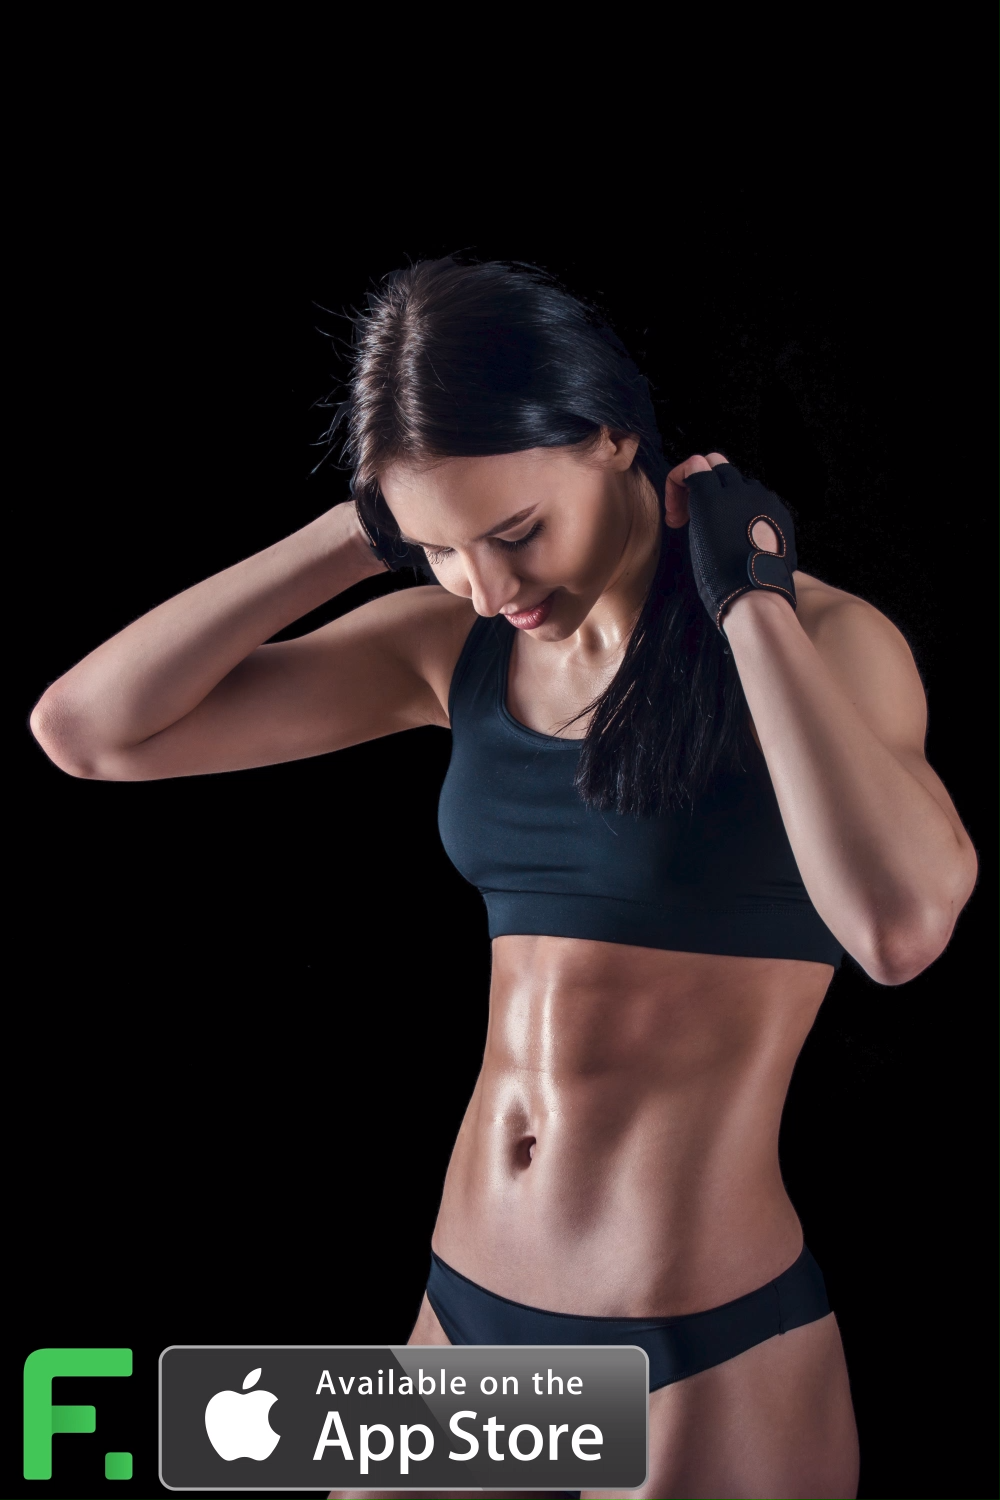 FitCoach: Weight Loss Workouts #workoutplans